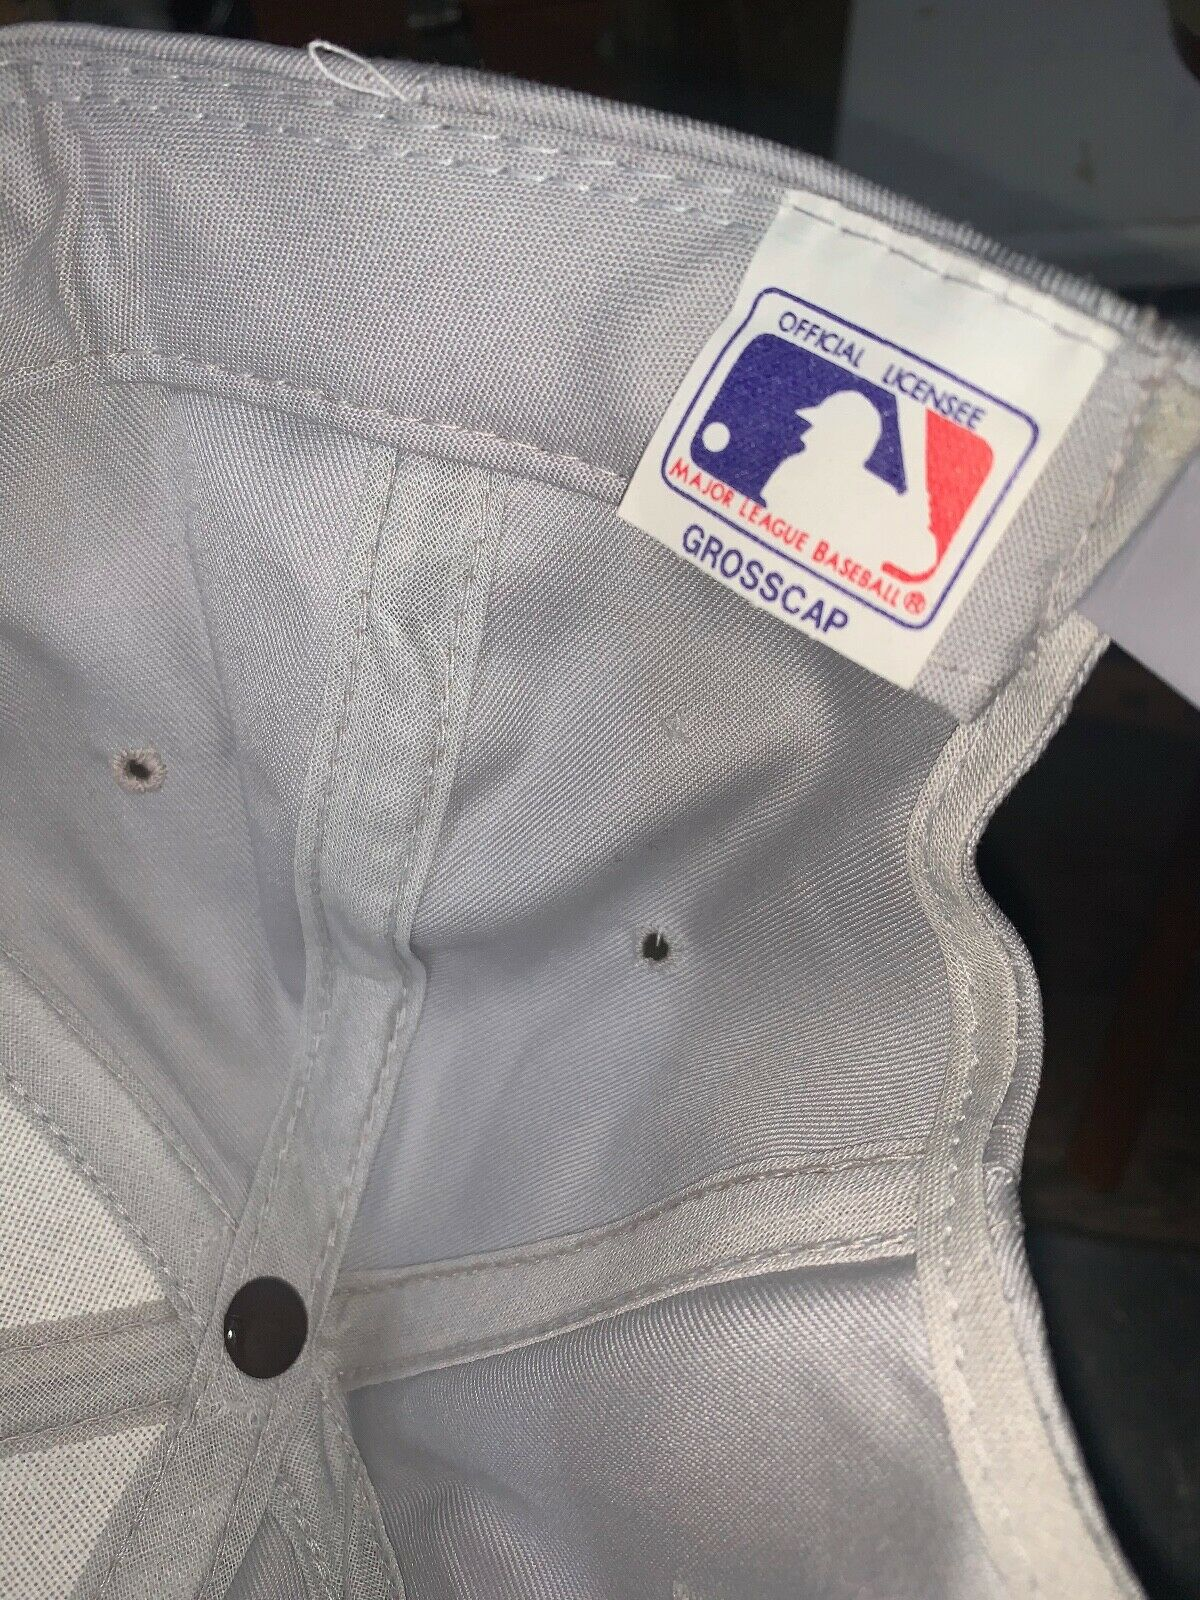 VINTAGE 80s/90s Boston Red Sox MLB Grosscap Brand… - image 12